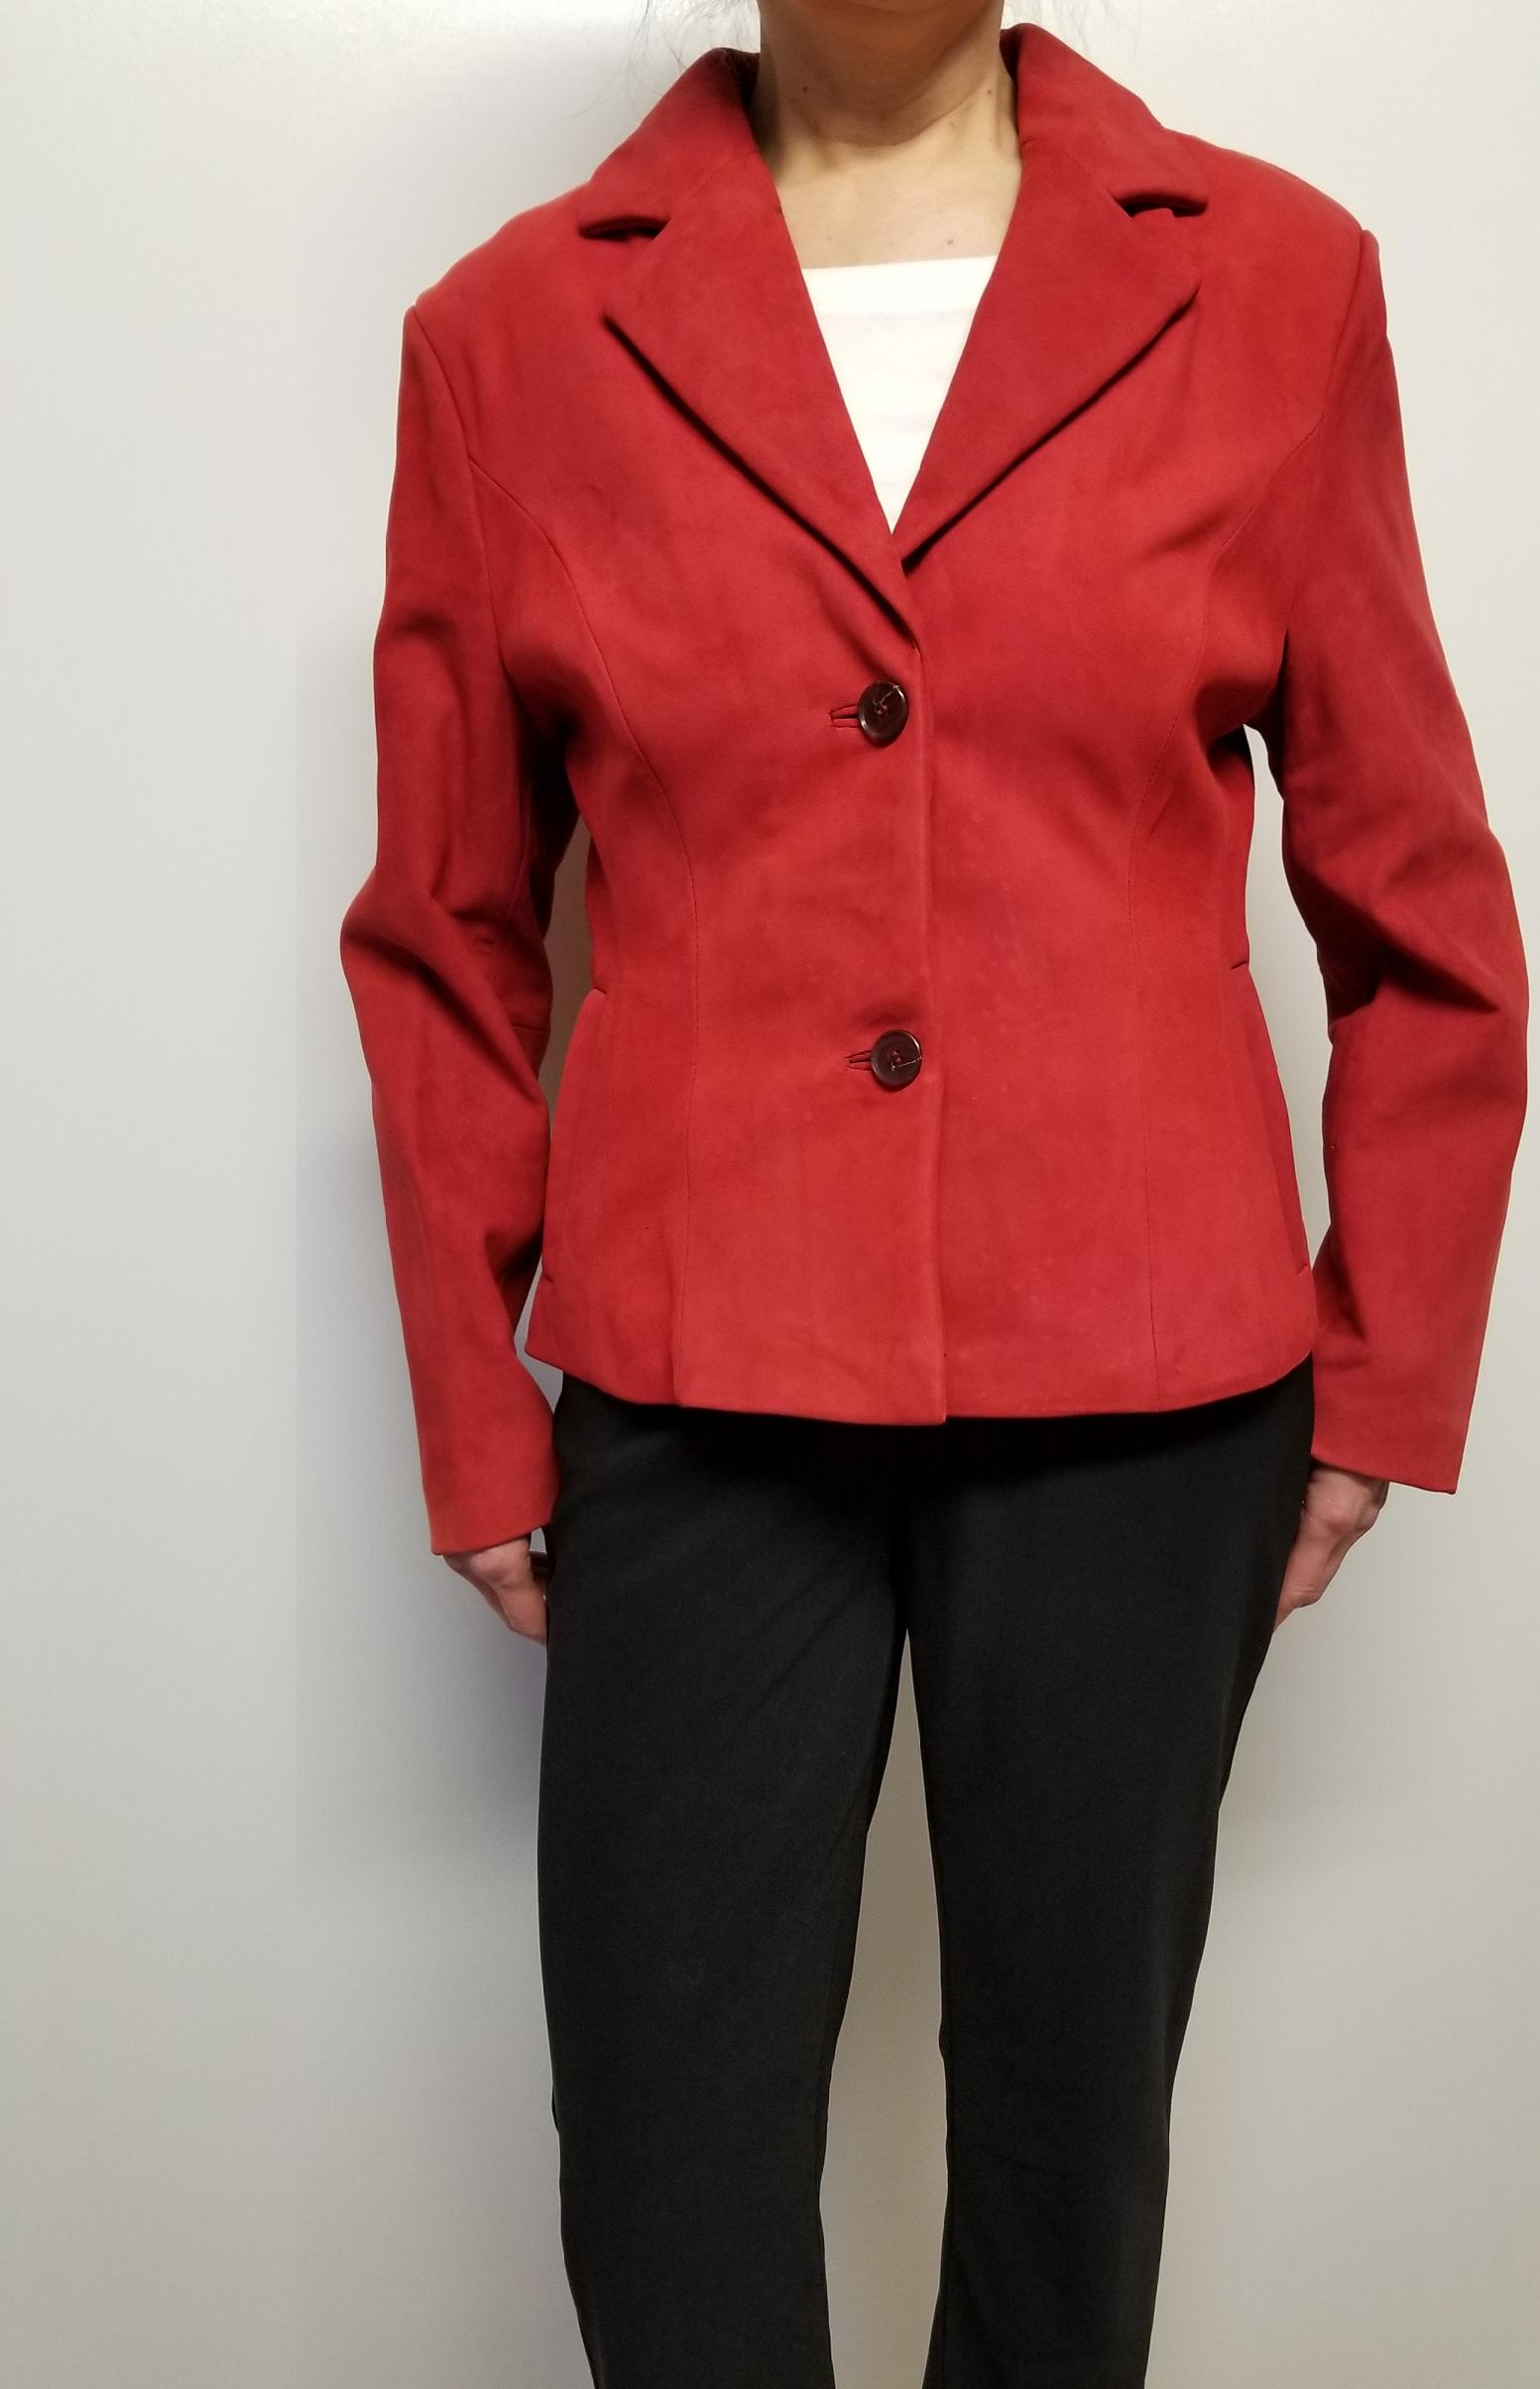 Women Suede Leather Blazer Jacket Color Red